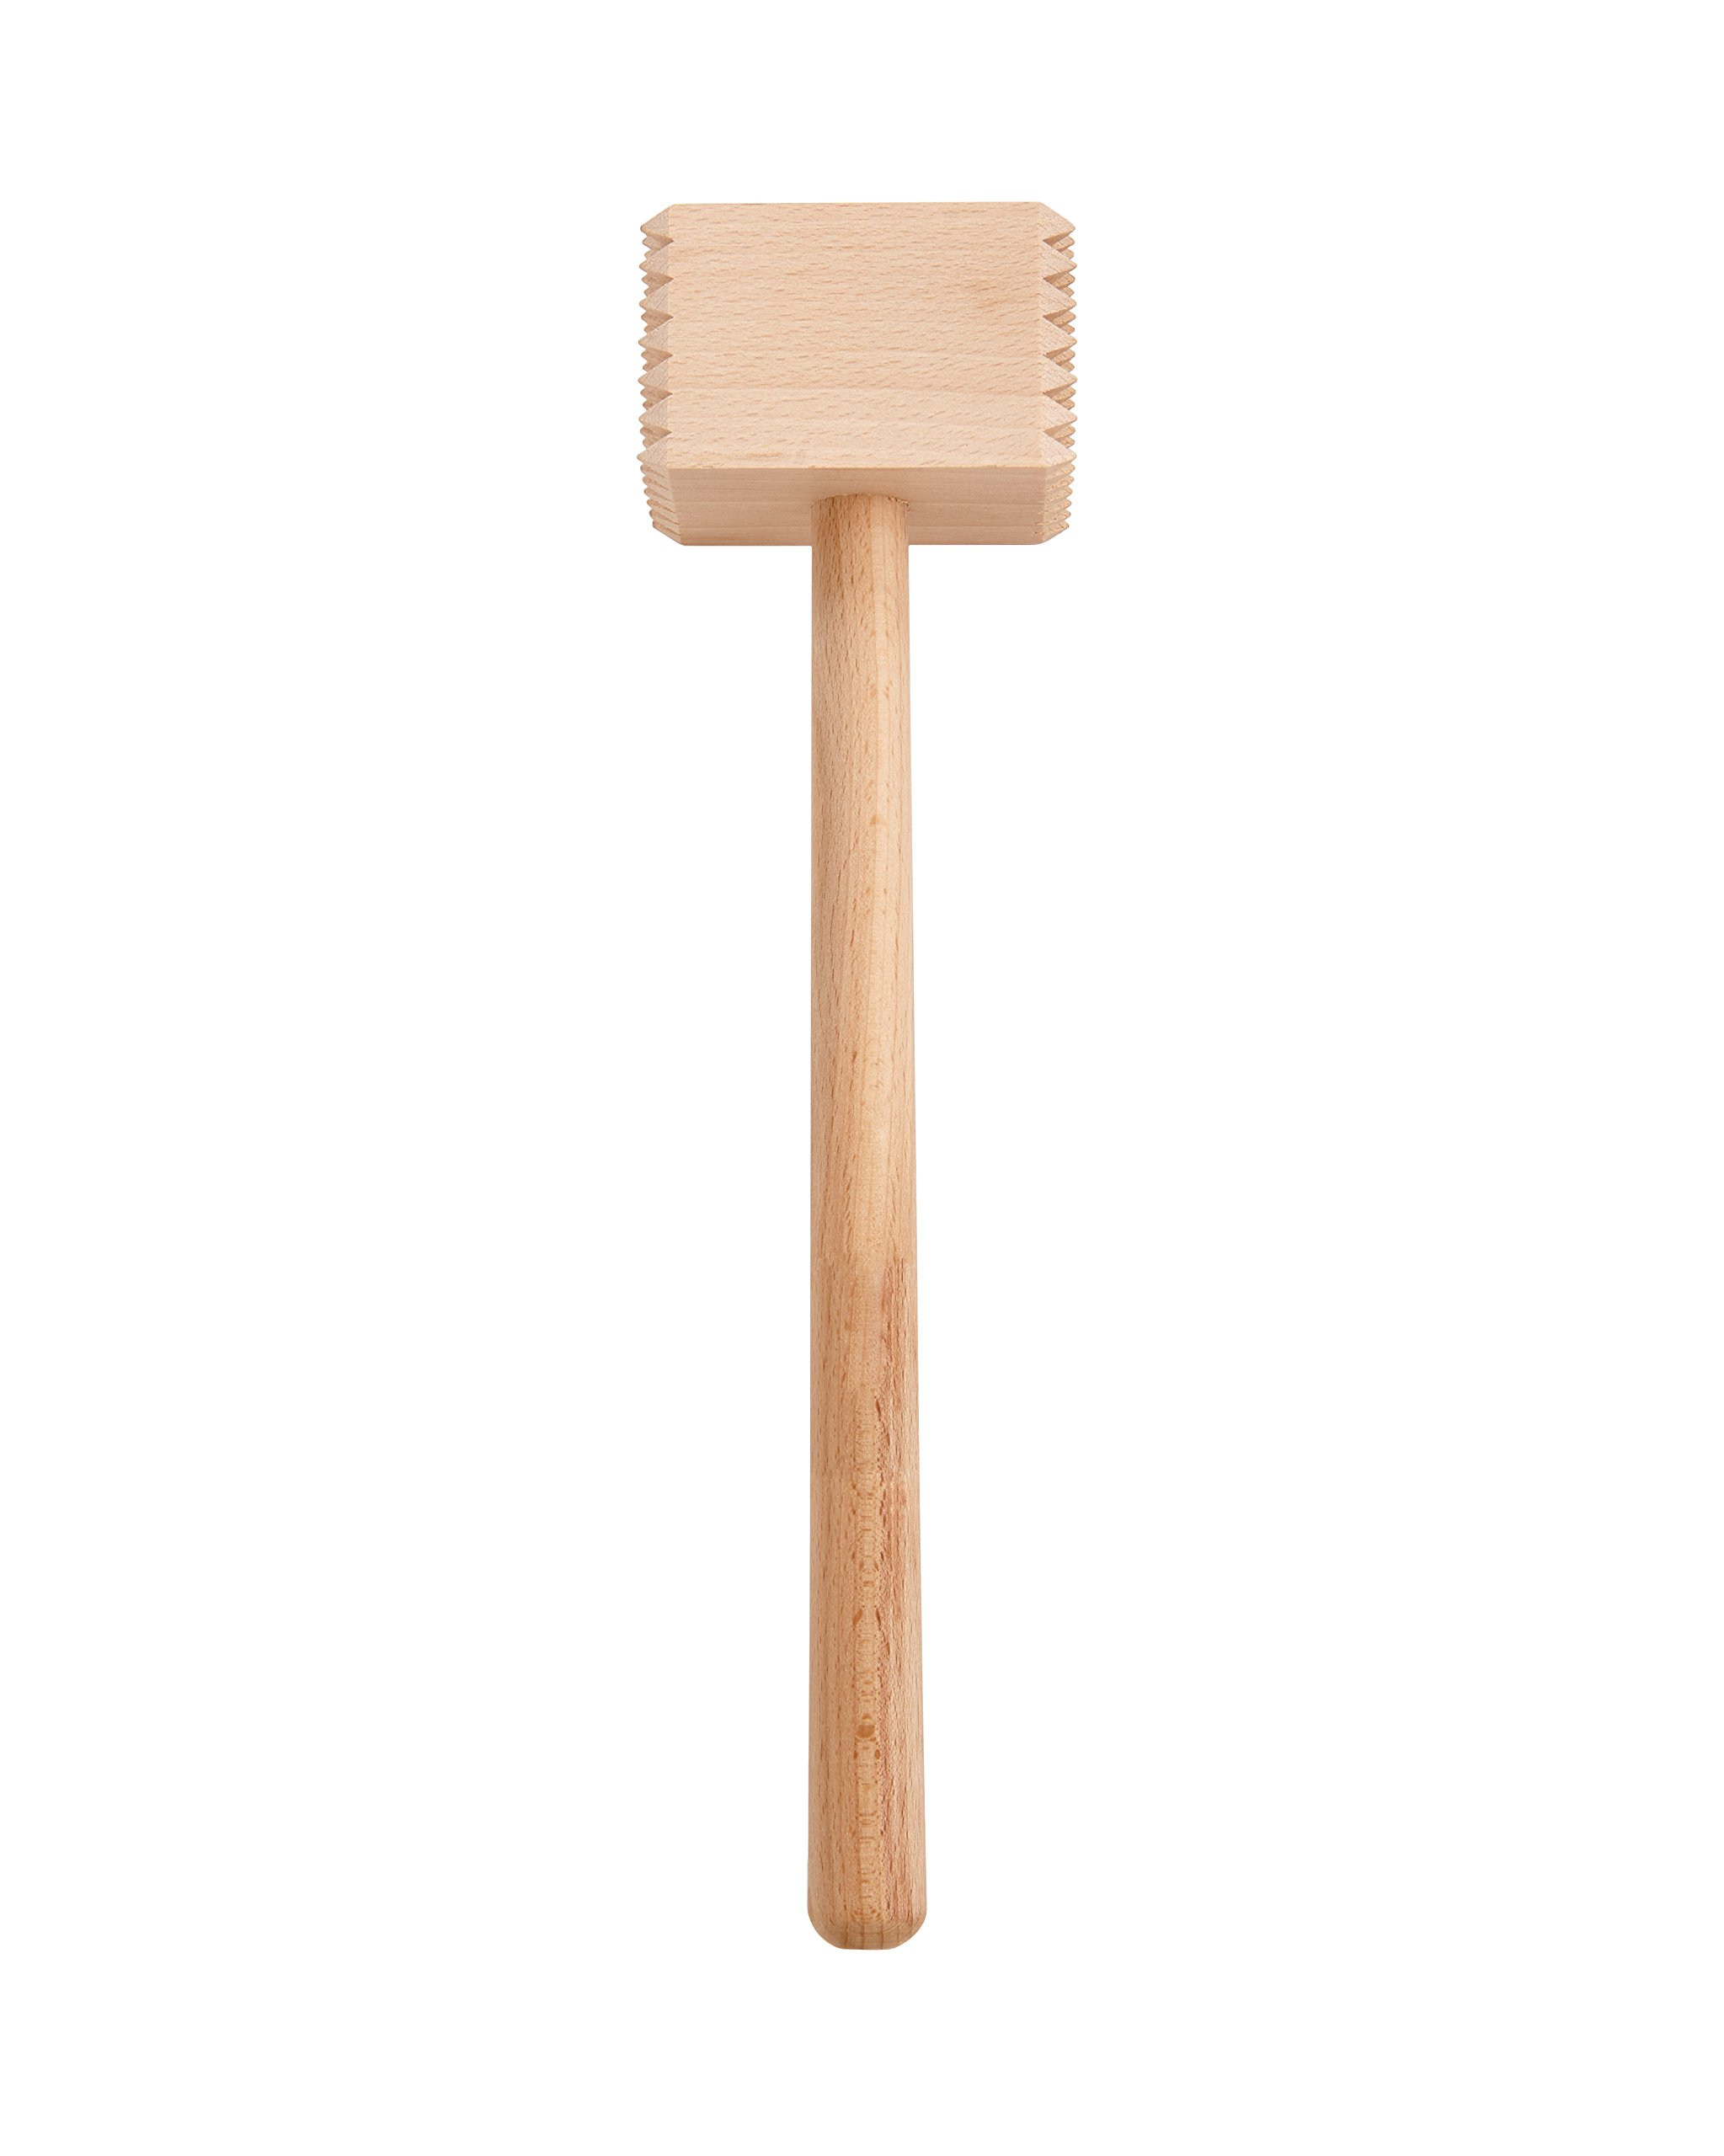 HIC Wooden Meat Tenderizer Mallet Marinating Prep Tool, Double Sided, FSC-Certified Eco-Friendly Beechwood, 12.5-Inches